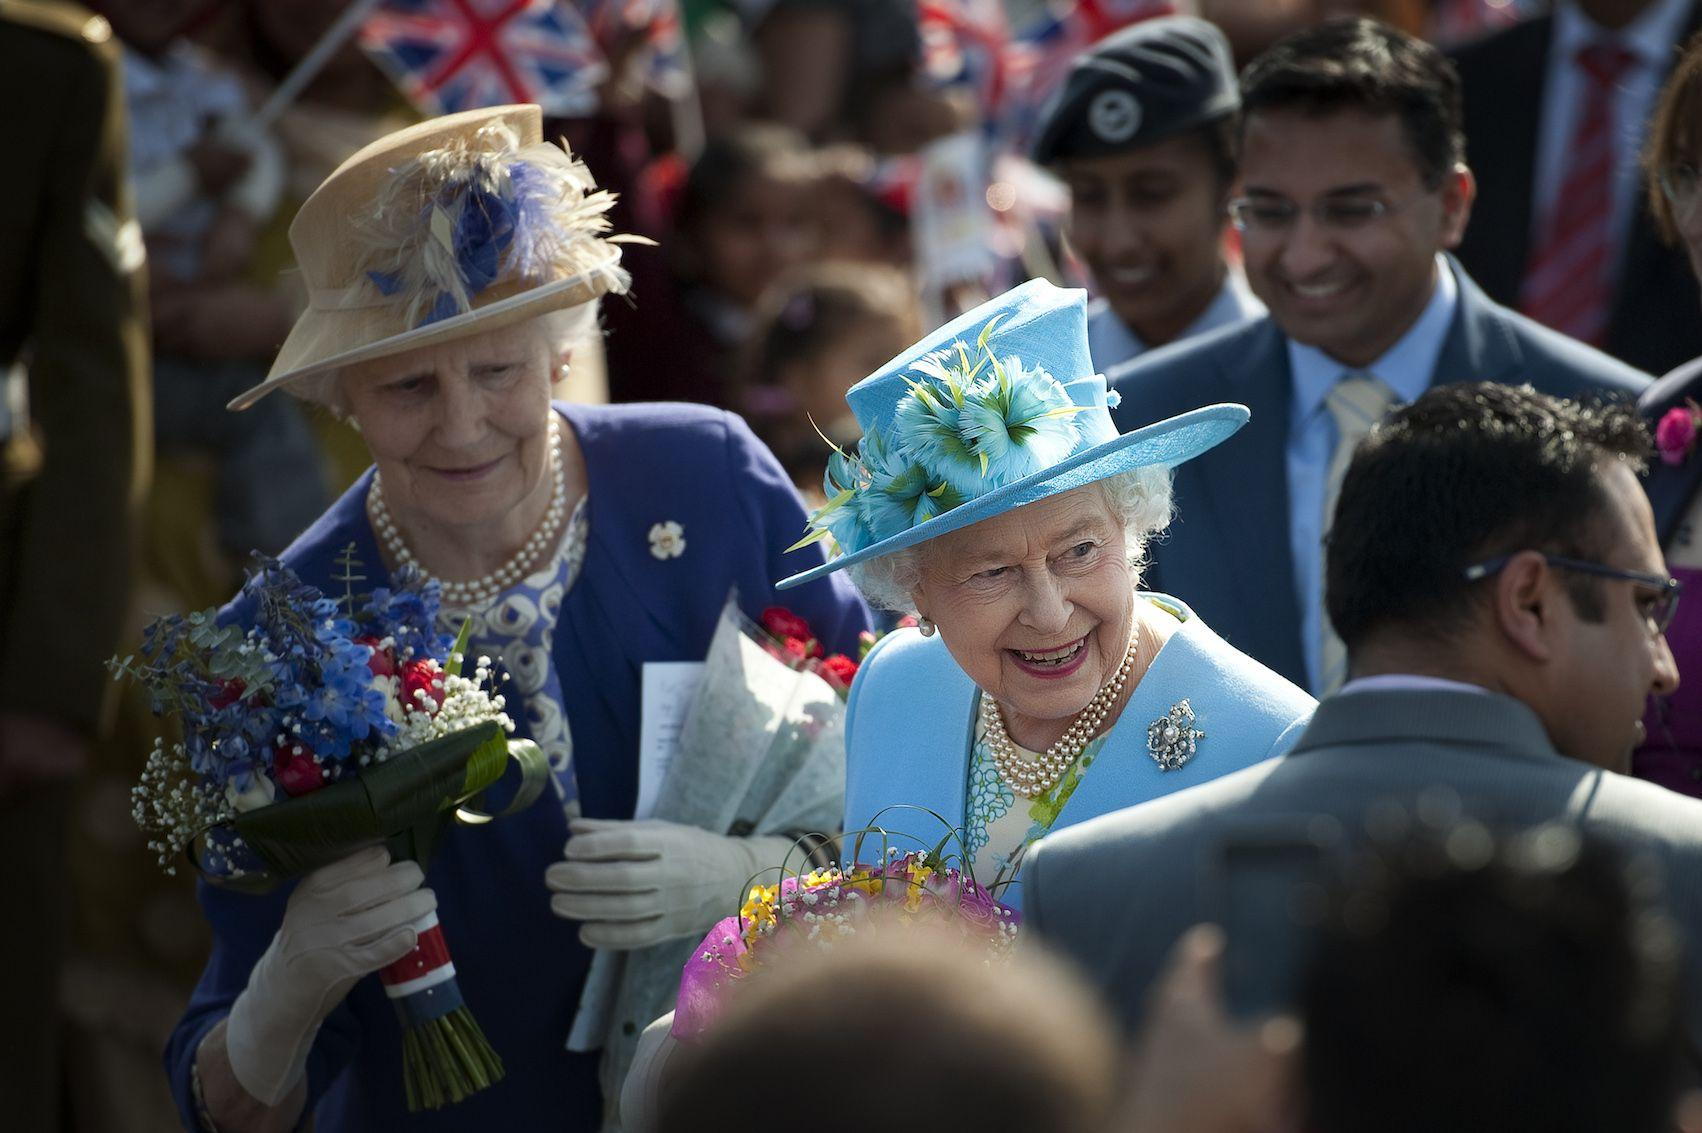 Queen elizabeth with lady in waiting holding flowers 1